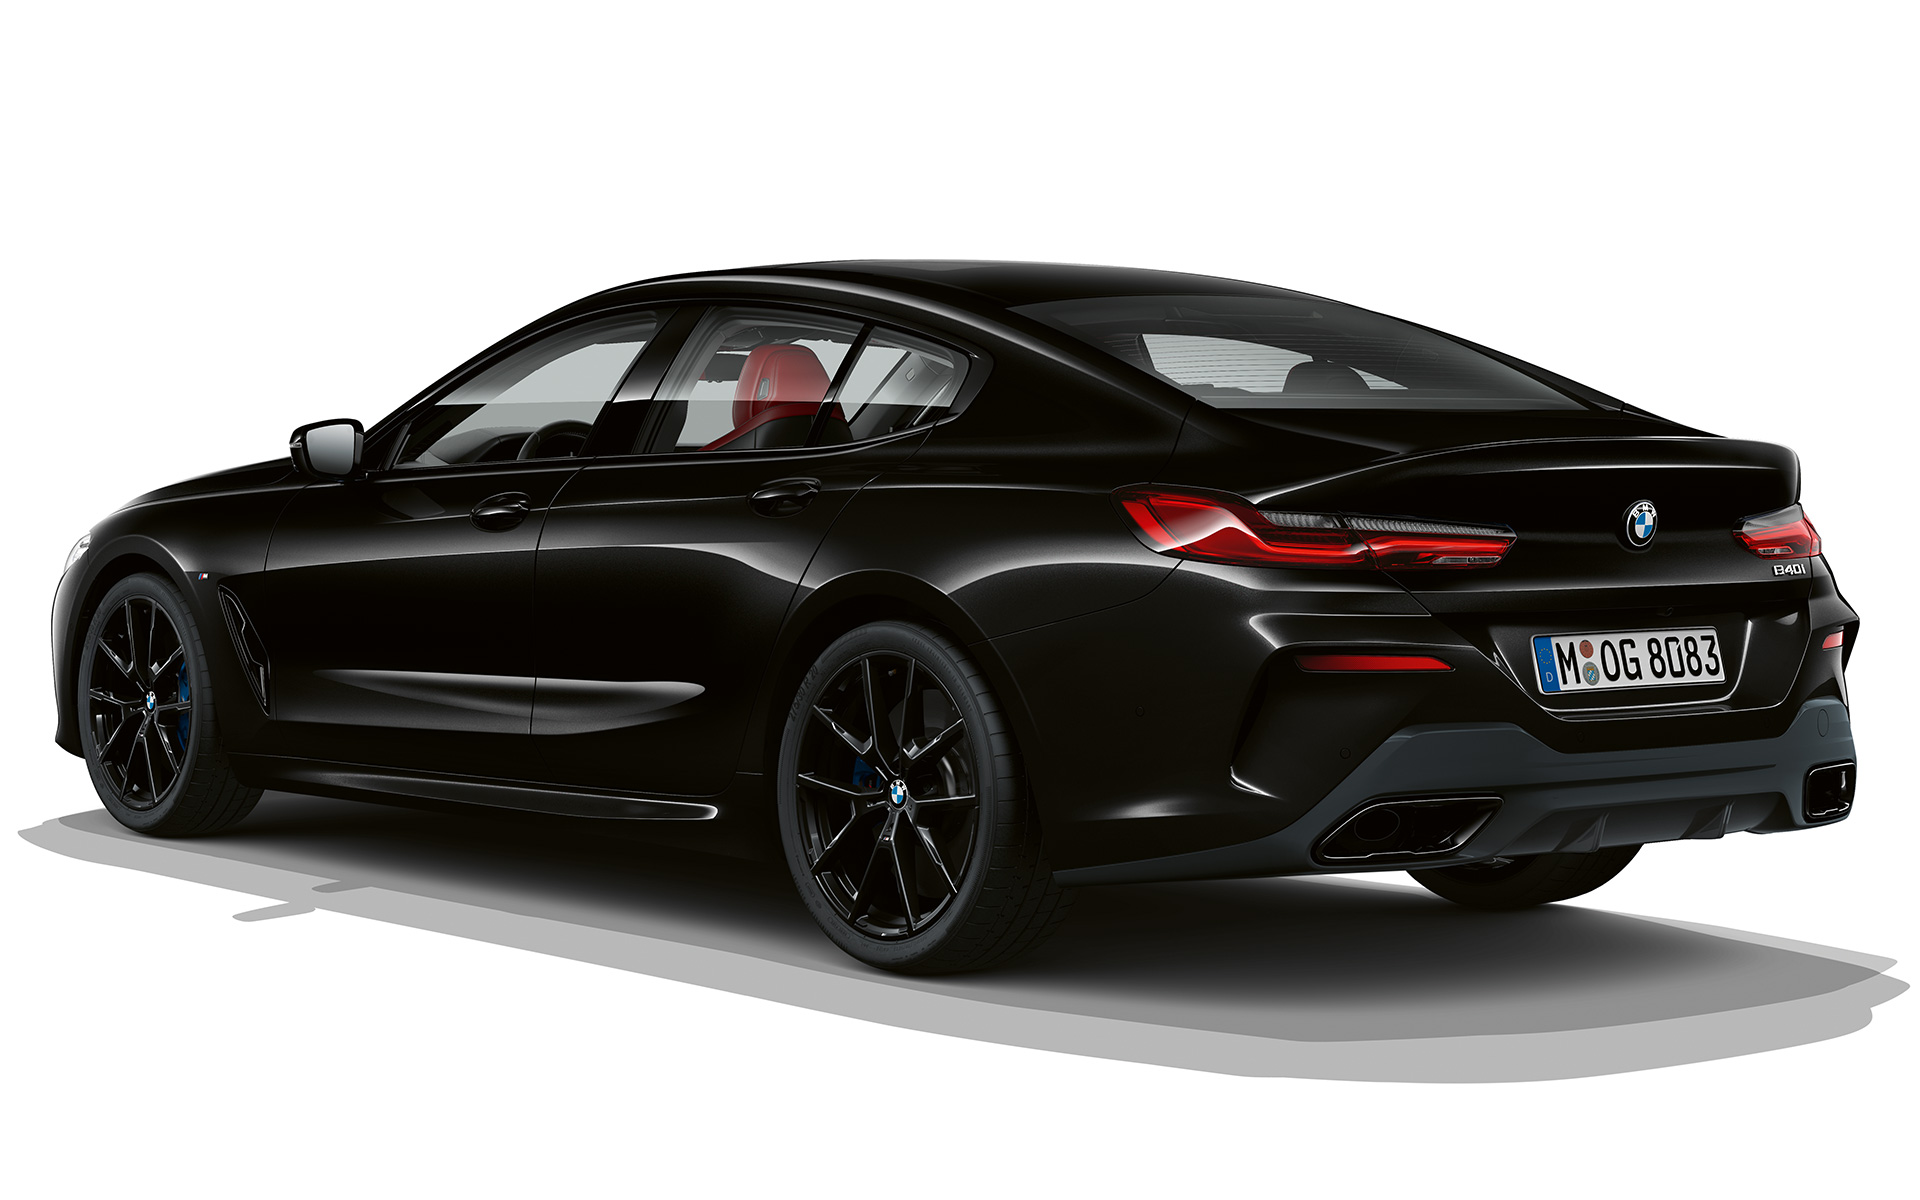 BMW Serie 8 Gran Coupé, Dark Seduction, vista posteriore a tre quarti